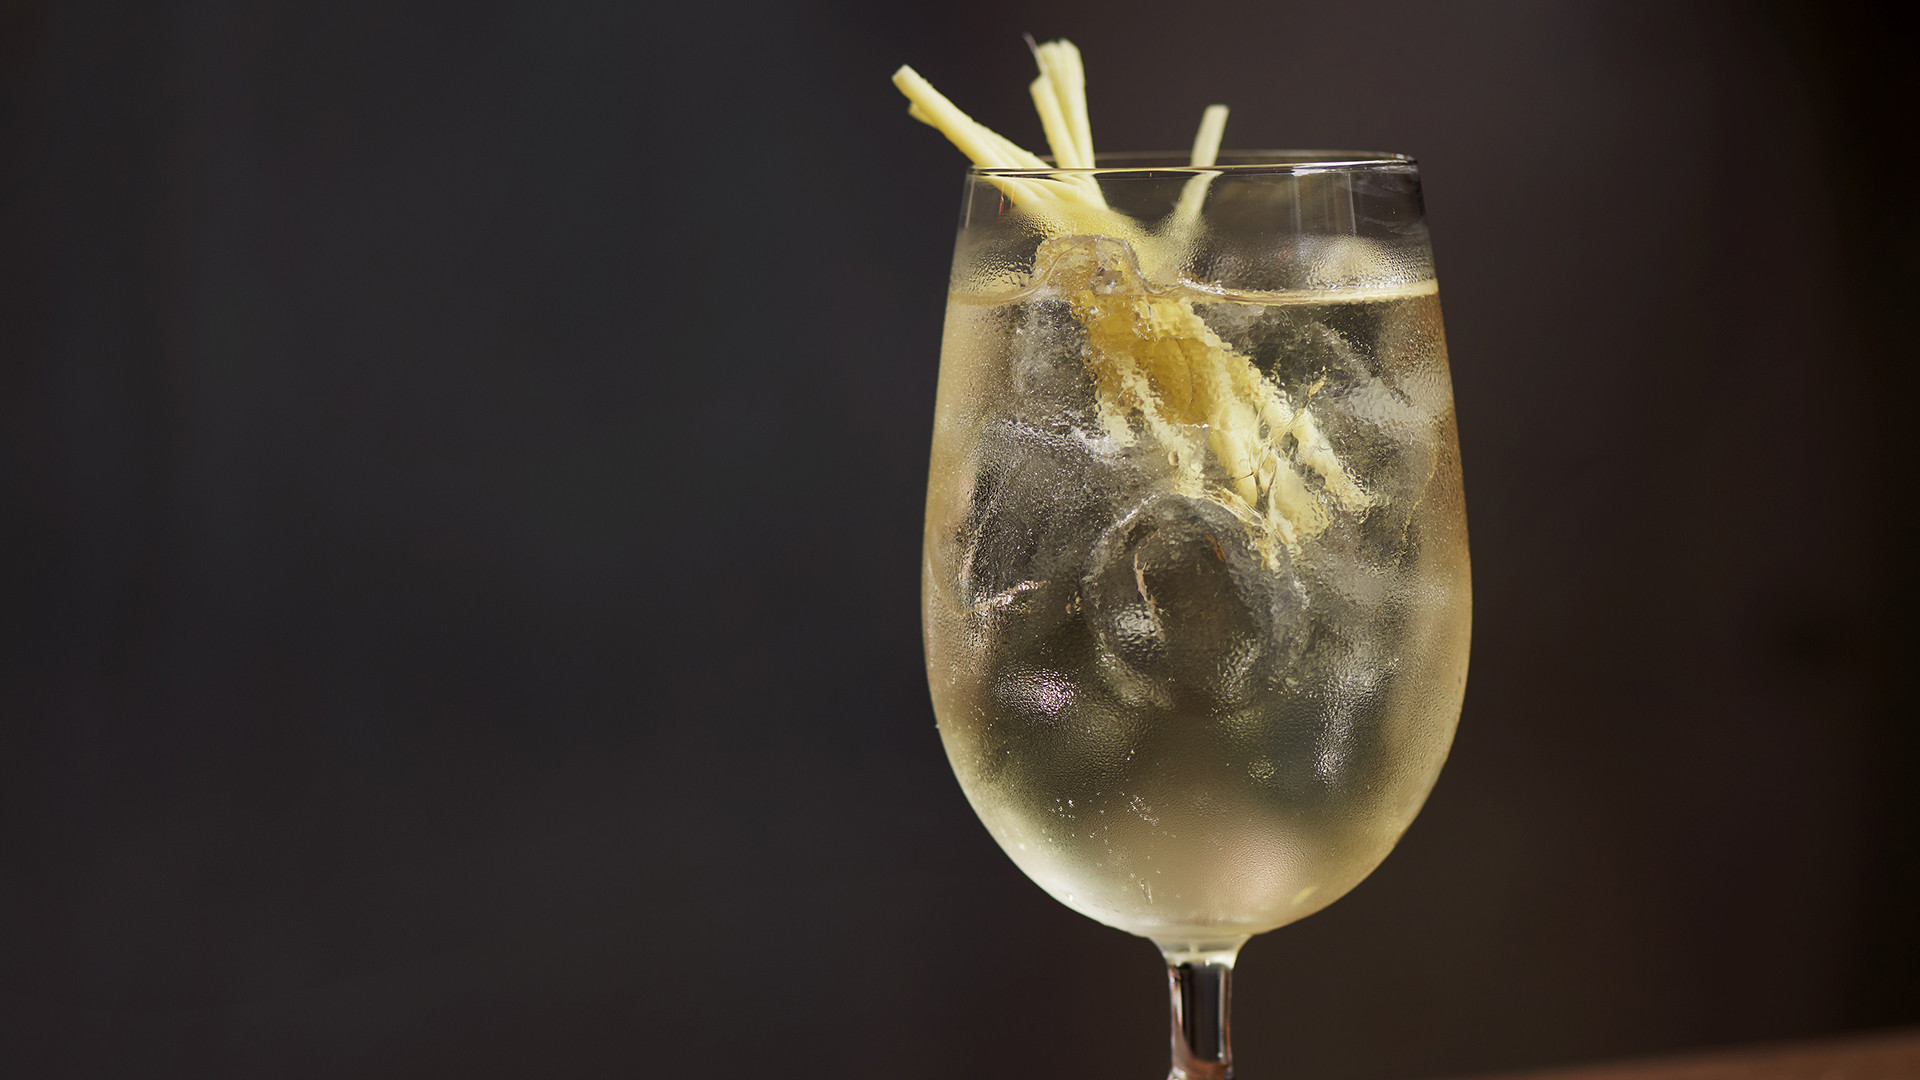 The cocktails at Officina 00 are well worth exploring